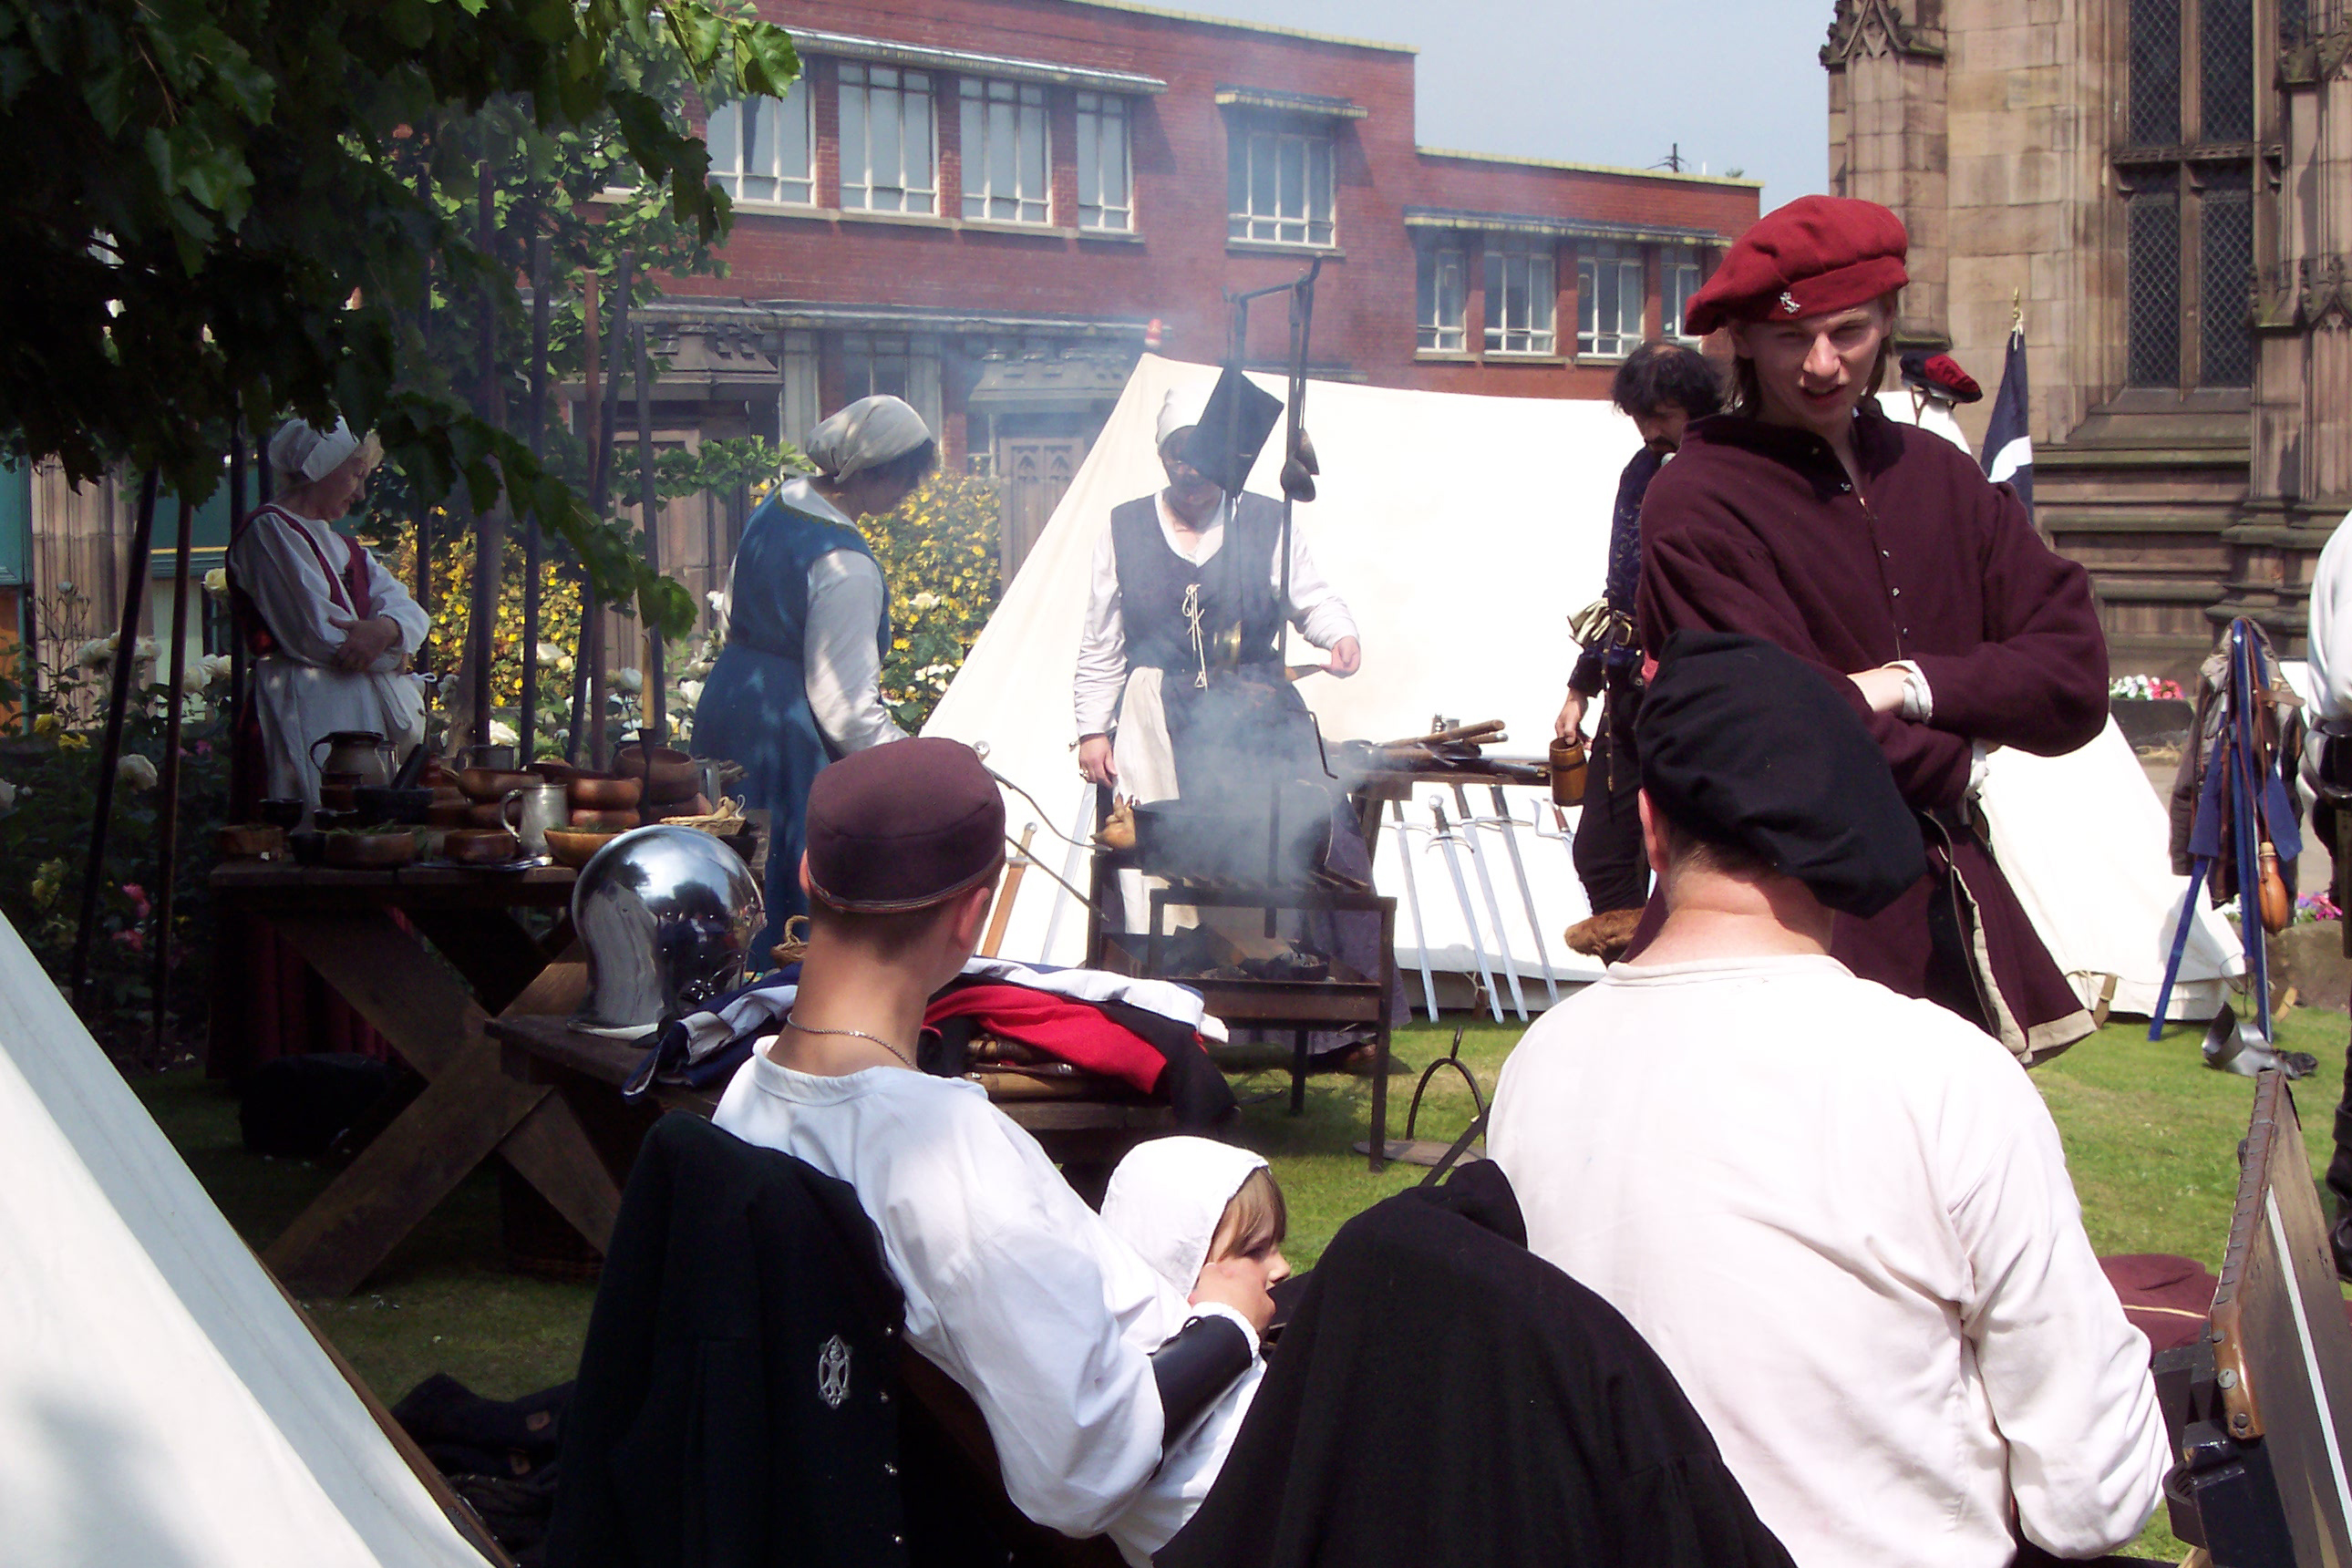 43. Take part in a historic re-enactment